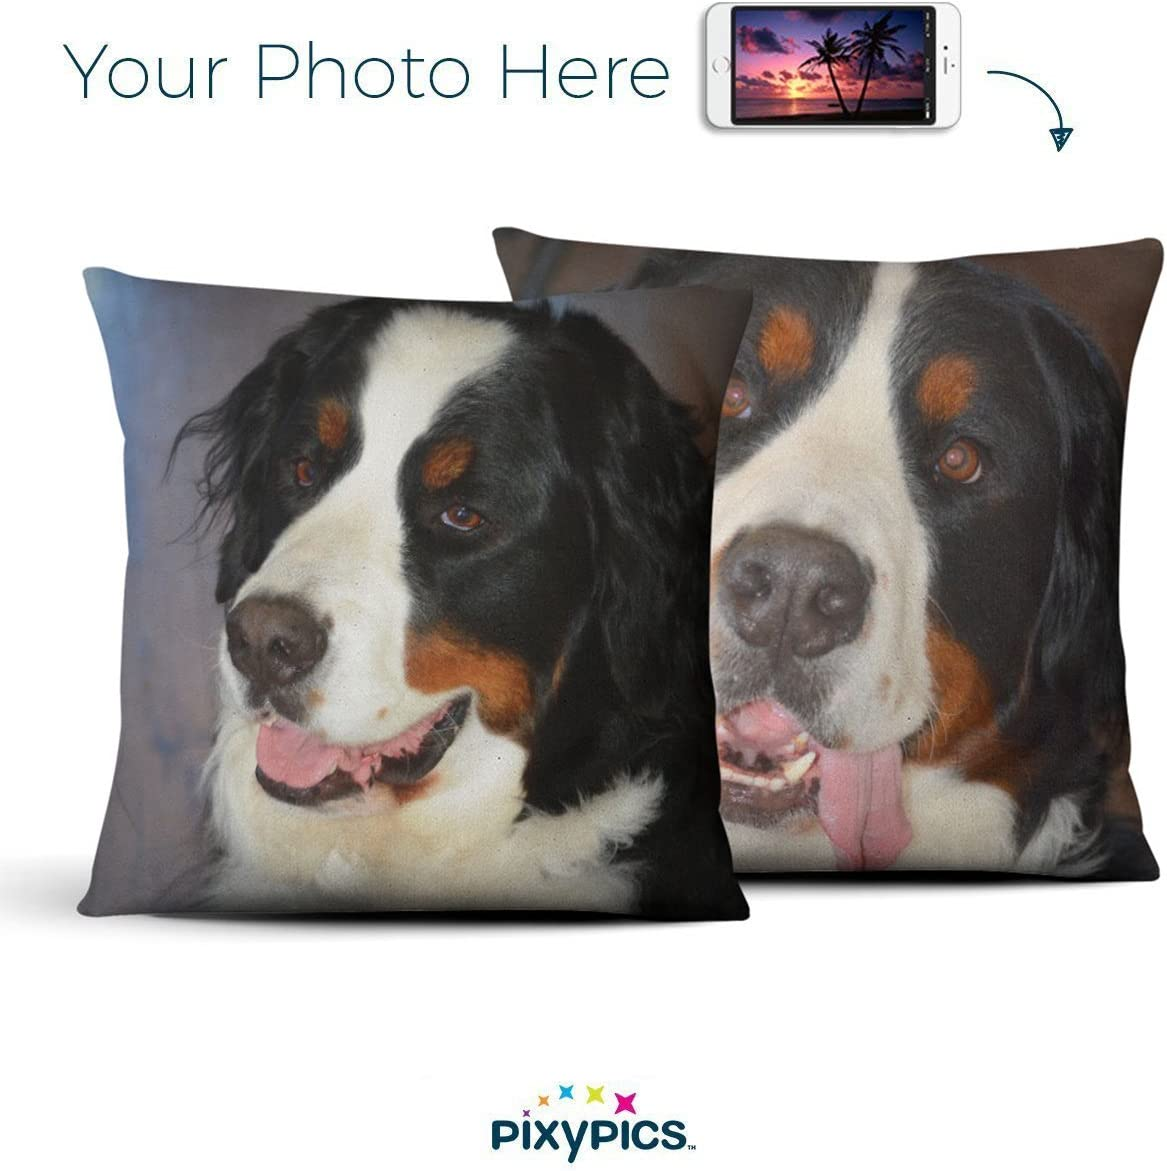 Amazing Custom Indoor Photo Pillows Your Photo Printed on Vibrant and Beautiful Photo Pillows with Insert Hidden Zipper 26 x26